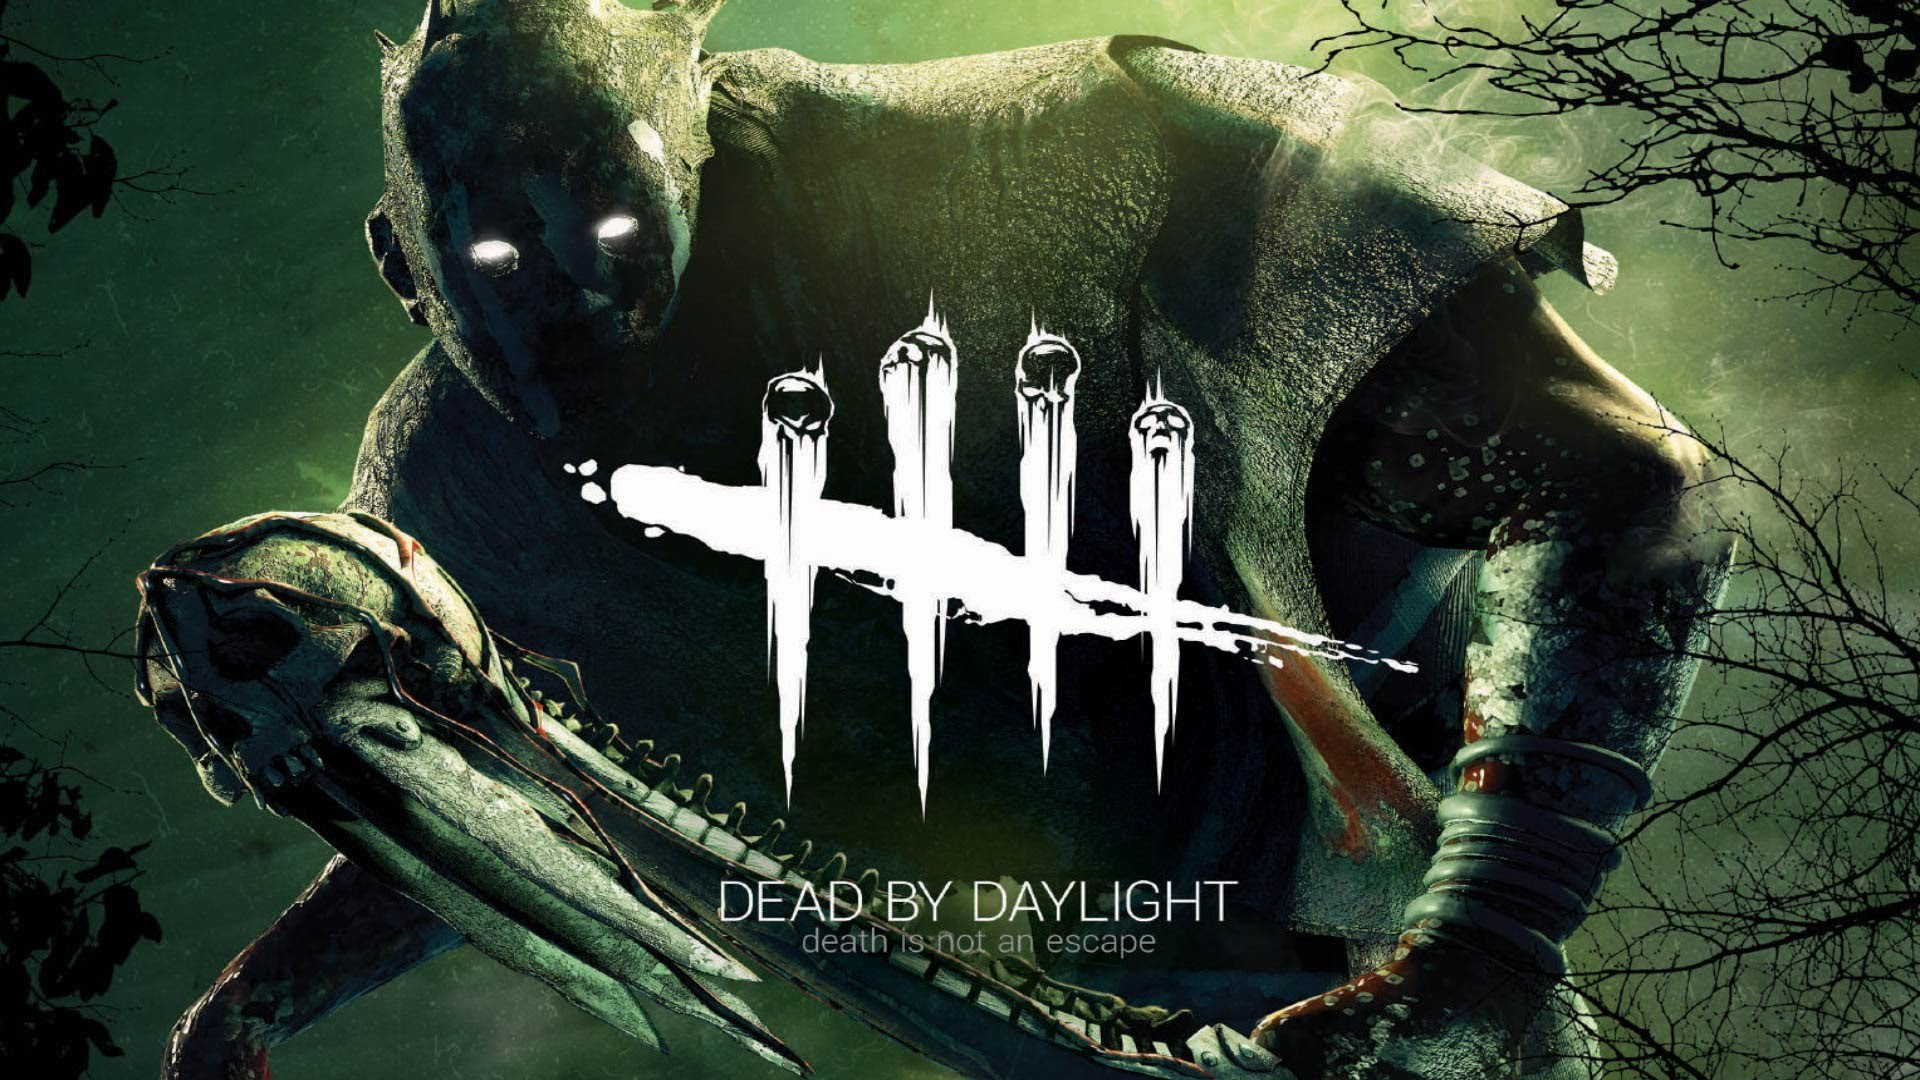 More 11 Dead by Daylight wallpapers, images, photo